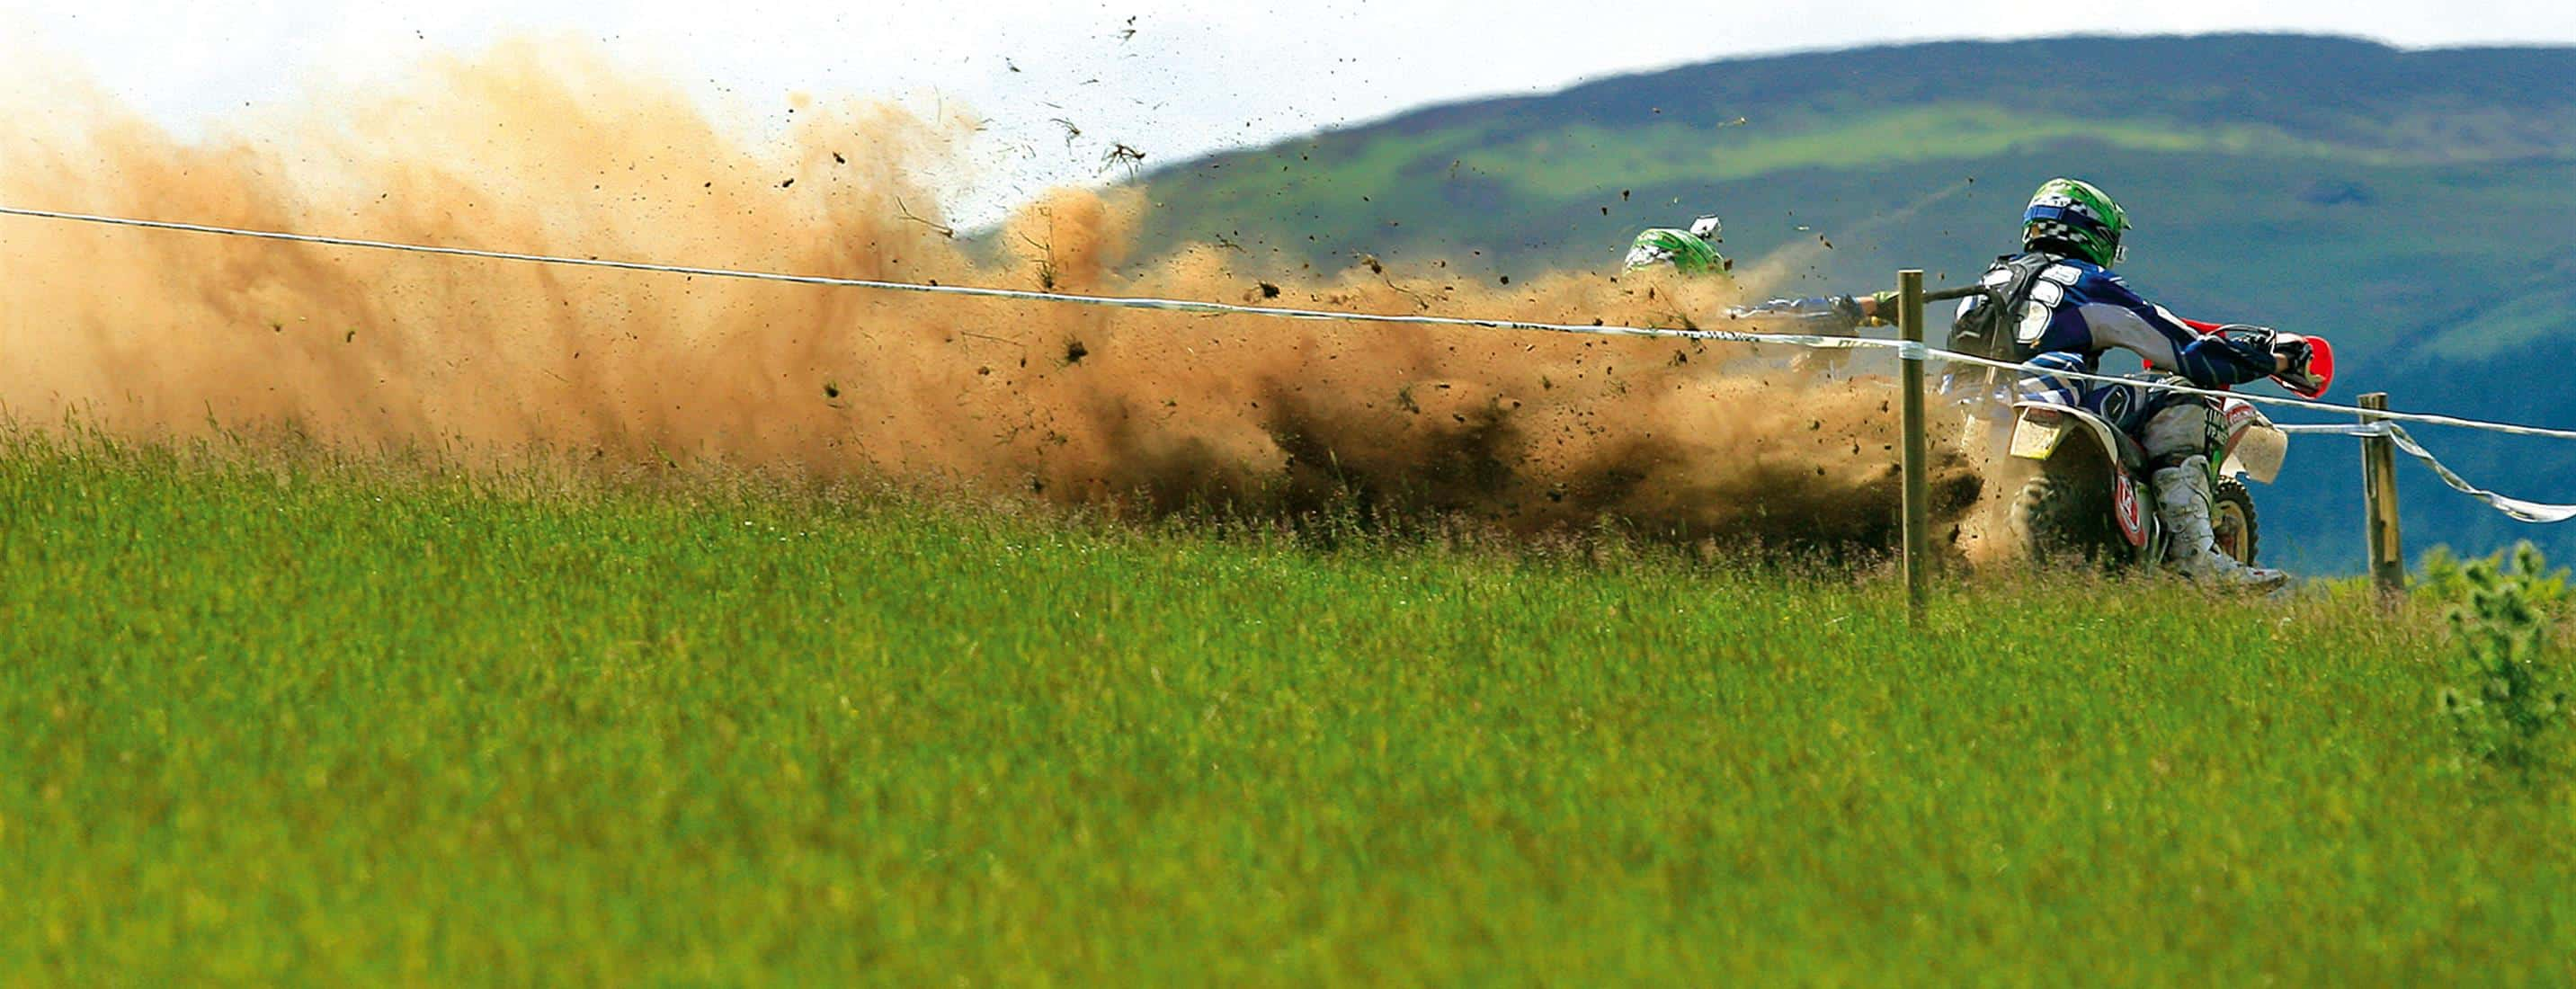 THE WORLD OF OFF-ROAD SIDECARS